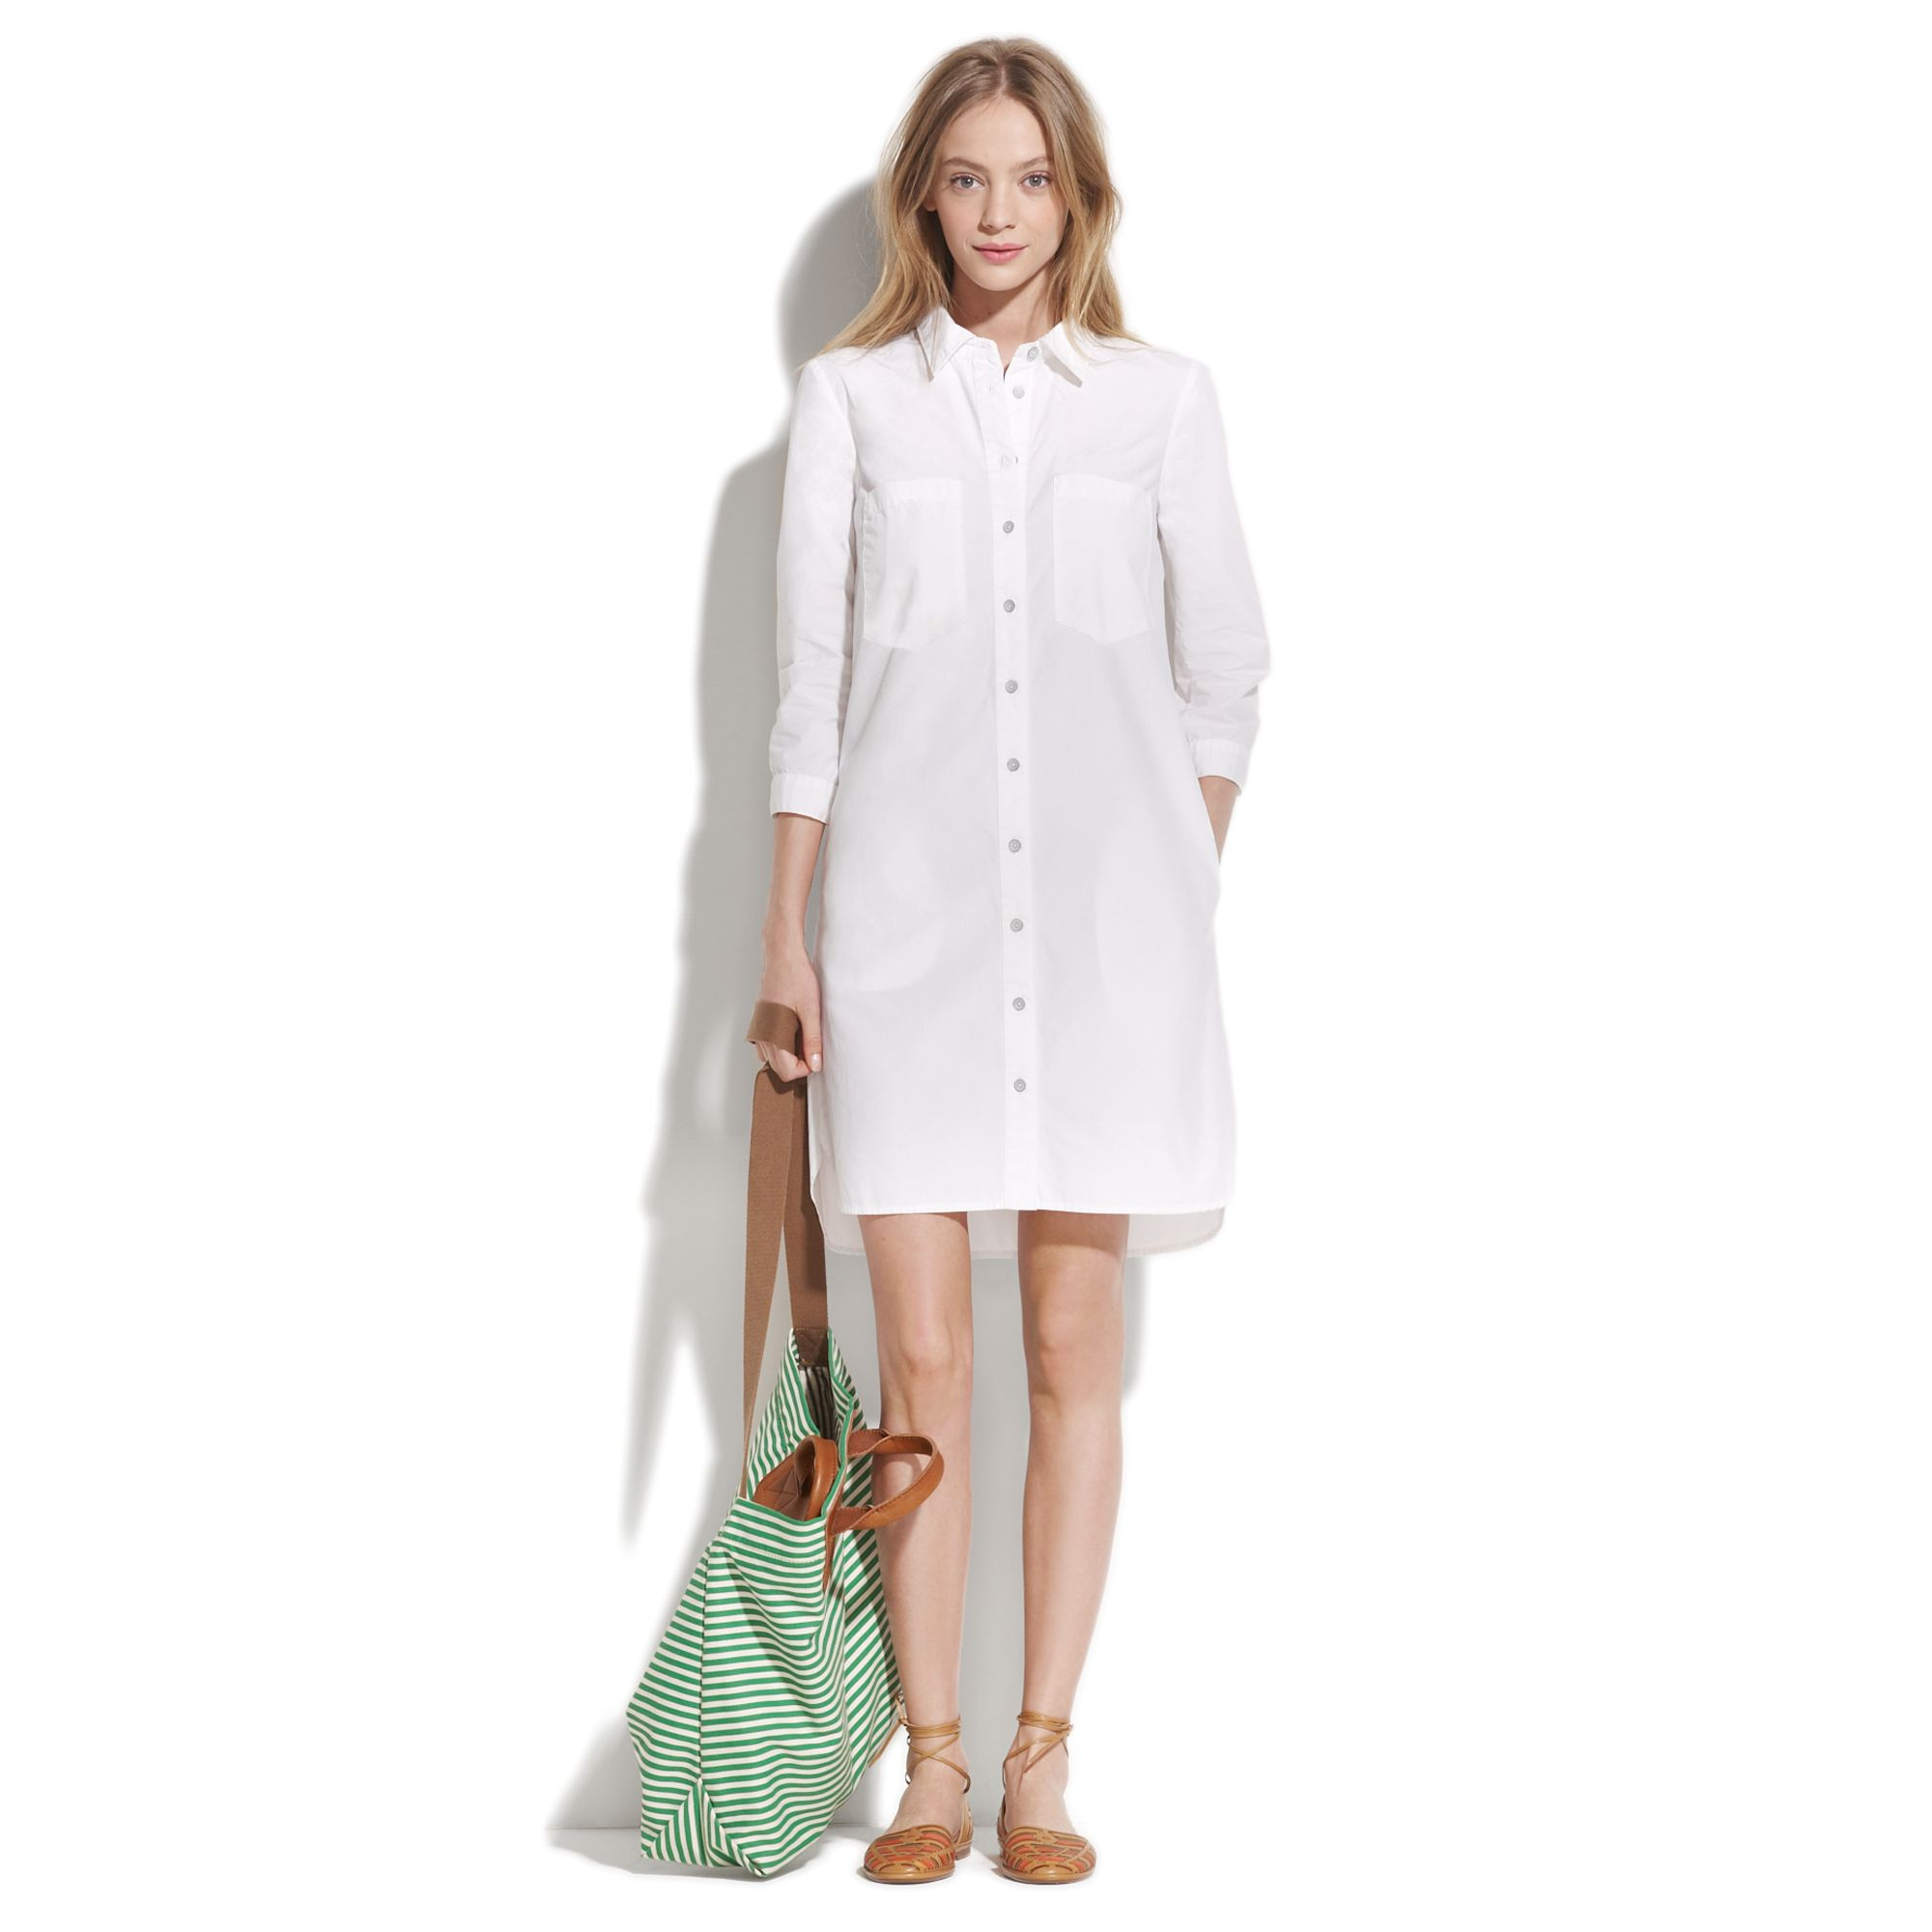 694e27ade4f Madewell Parkfield Shirtdress in White - Lyst